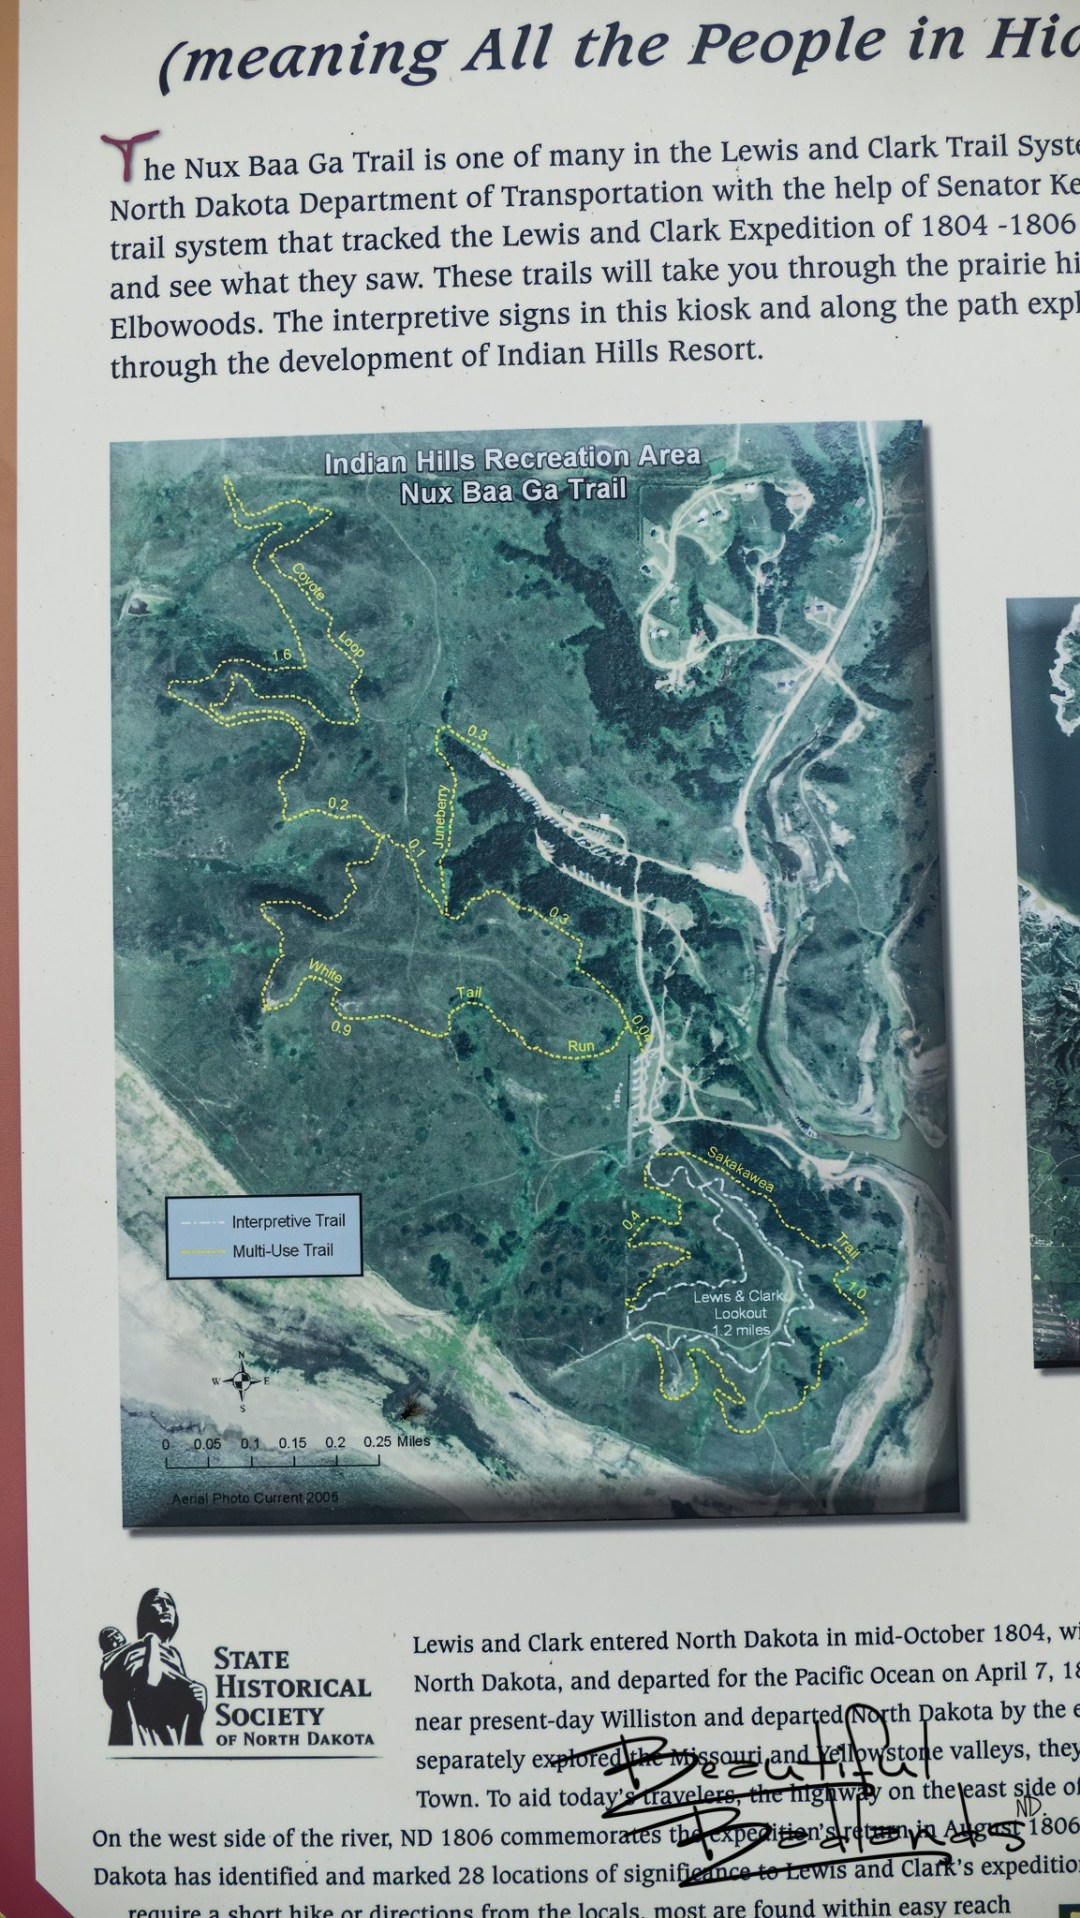 The Nux Baa Ga Trail at Indian Hills Recreation Area, on Good Bear Bay of Lake Sakakawea, North Dakota is part of the Lewis and Clark Trail System.